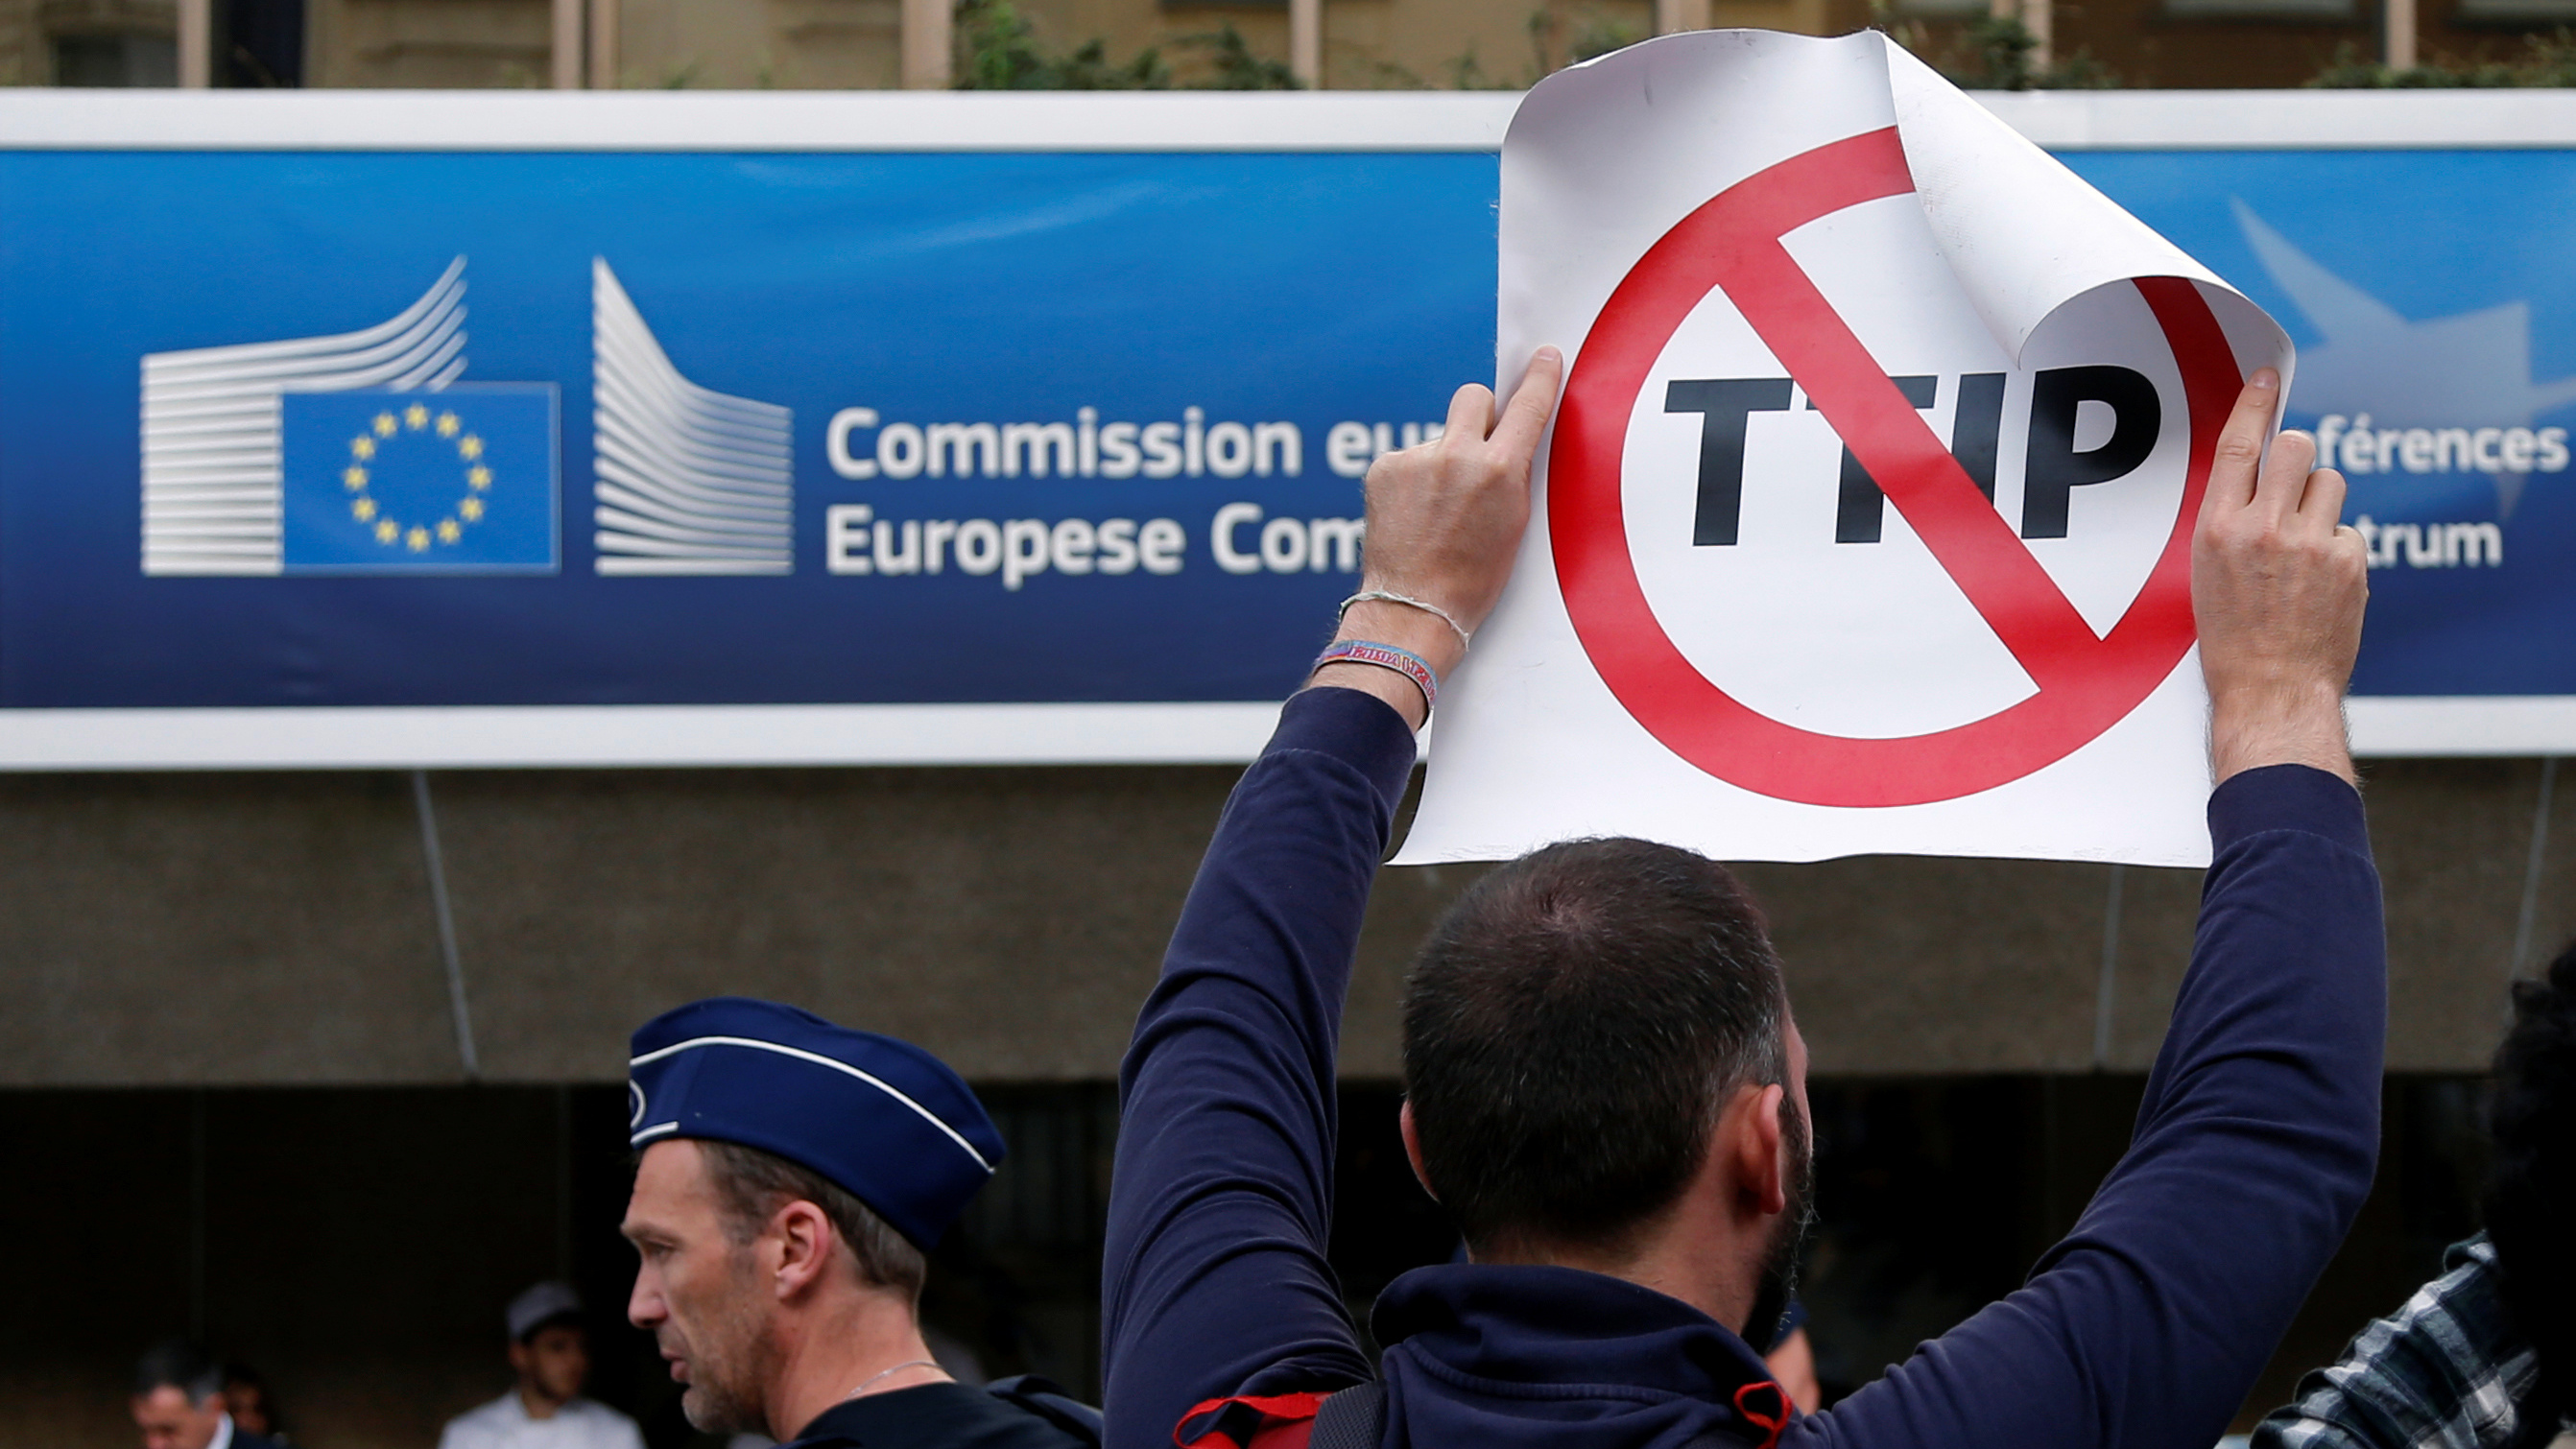 A protestors holds a sign protesting TTIP.